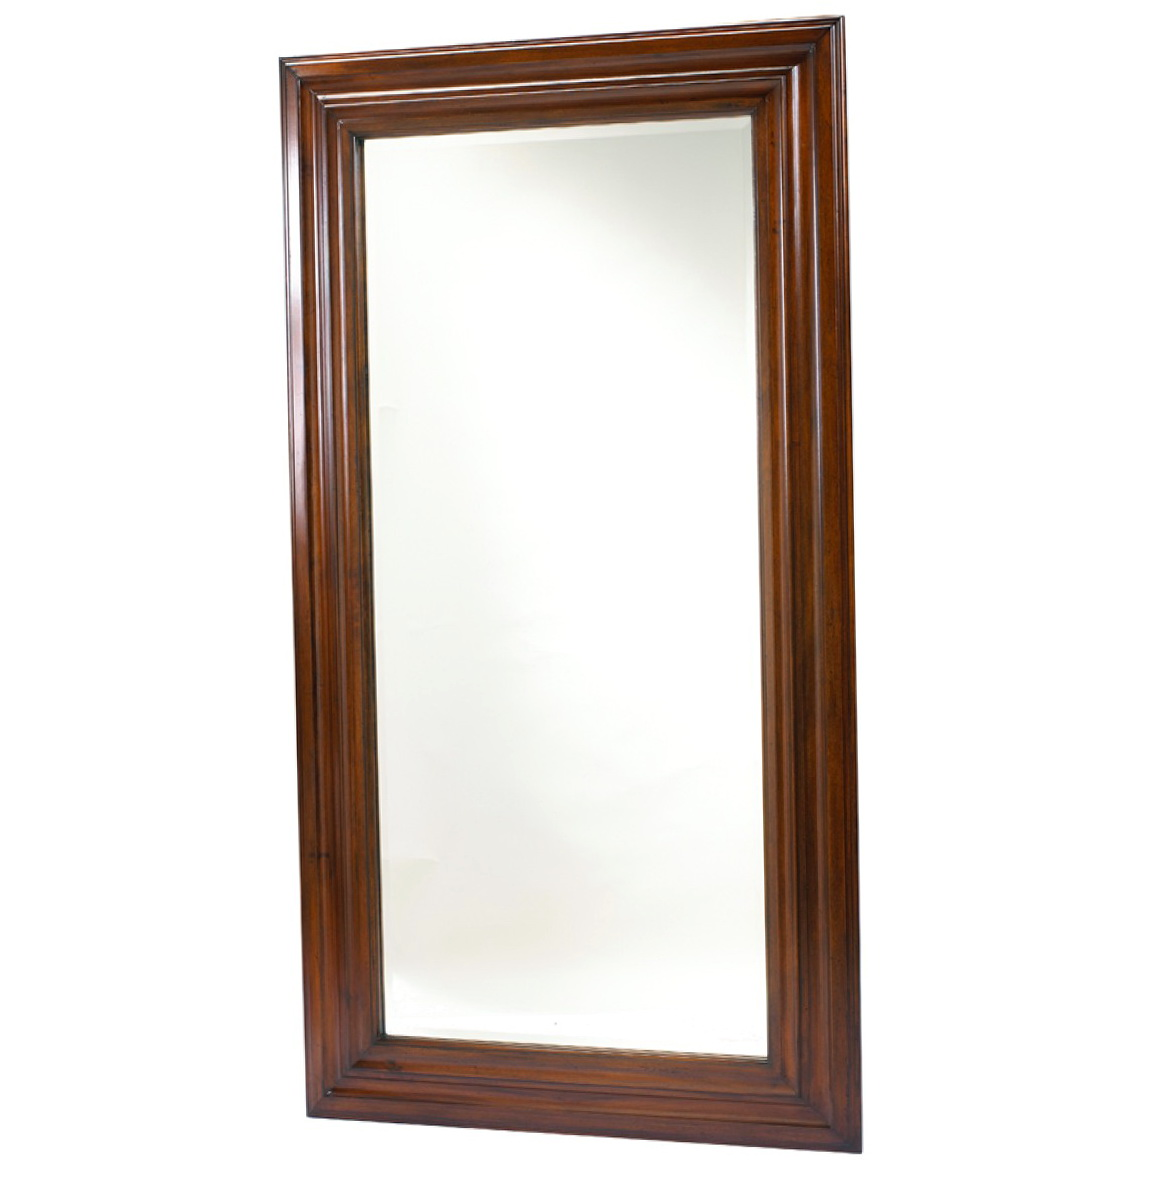 Full length floor mirrors for sale home design ideas for Mirrors for sale